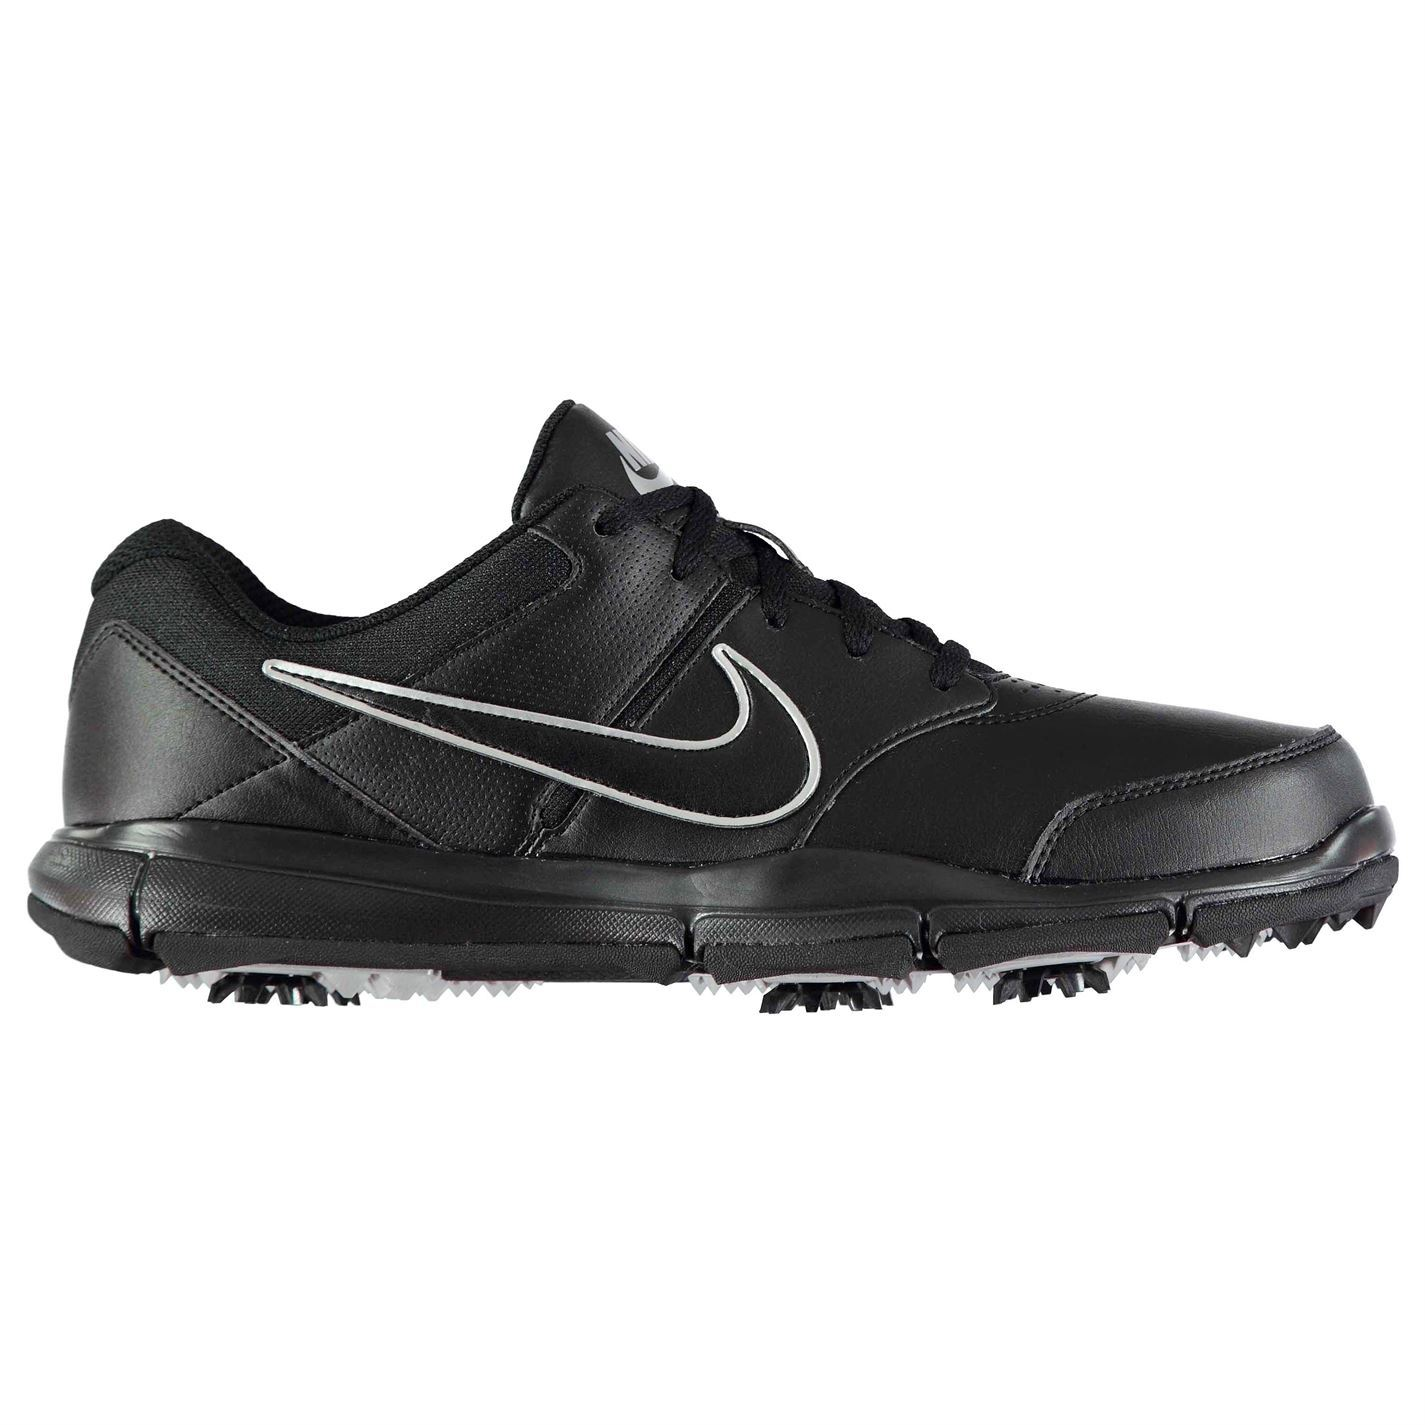 Nike-Durasport-4-Spiked-Golf-Shoes-Mens-Spikes-Footwear thumbnail 3